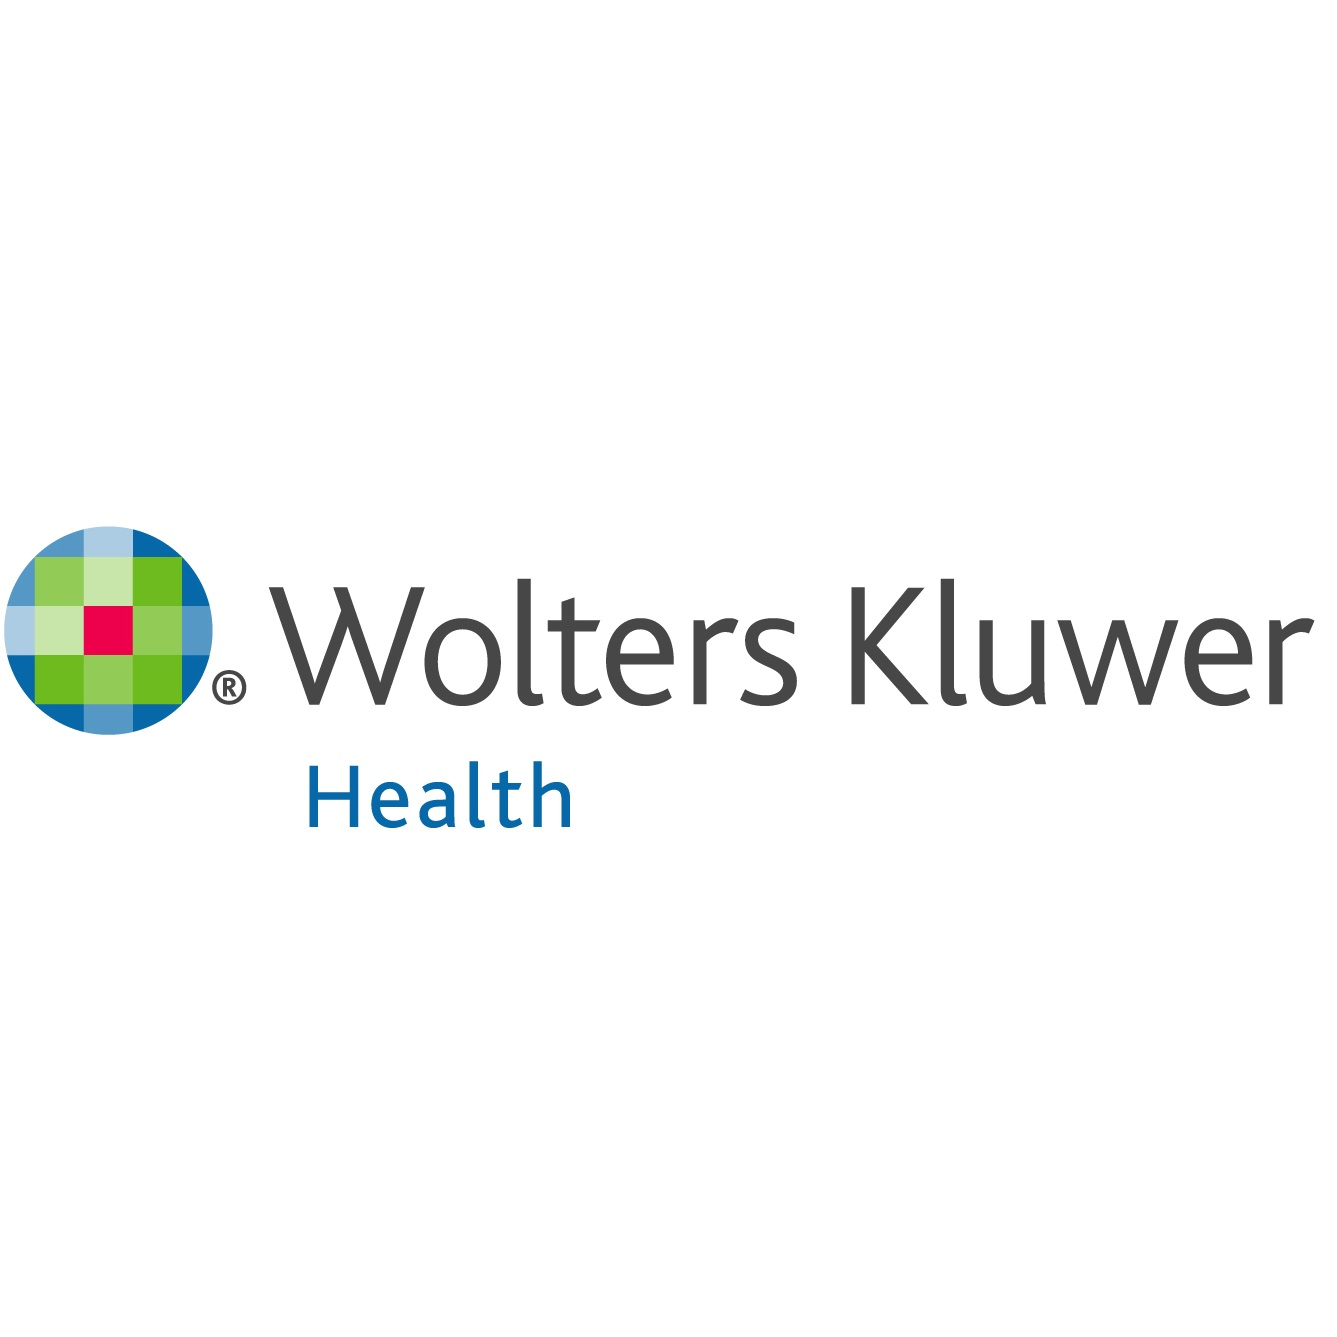 Wolters_Kluwer_Health_colored.jpg